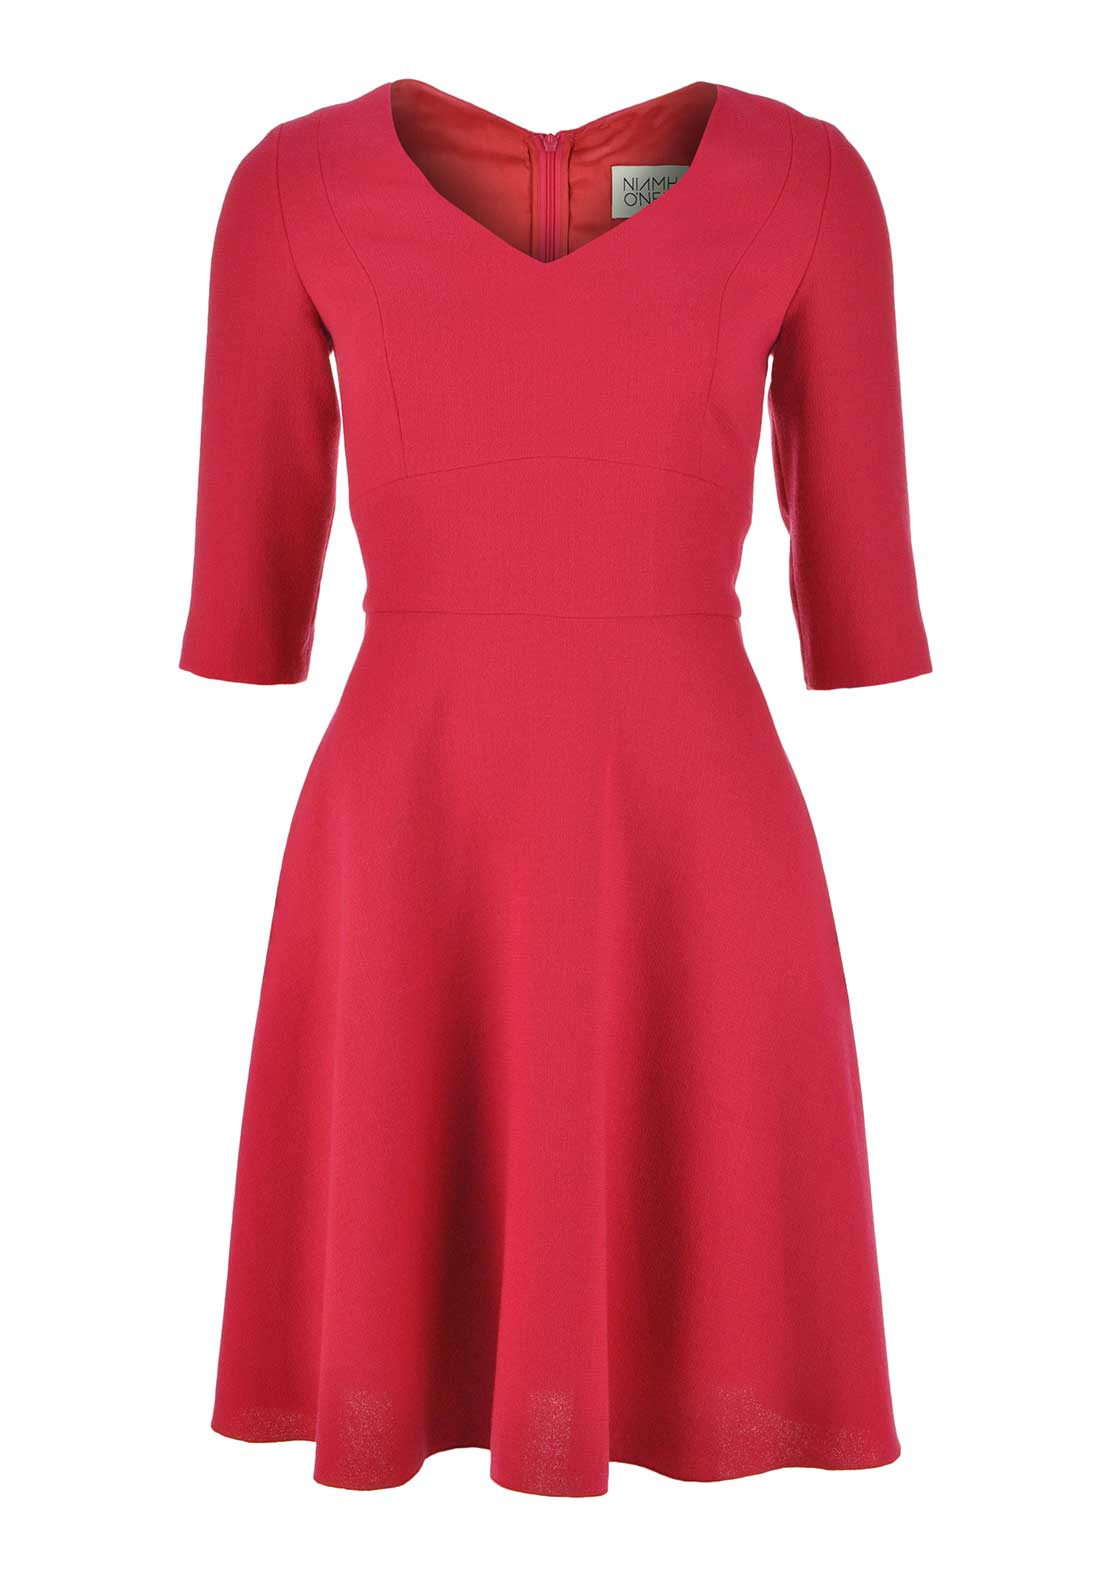 Niamh O'Neill Milly Cropped Sleeve A-Line Wool Dress, Raspberry